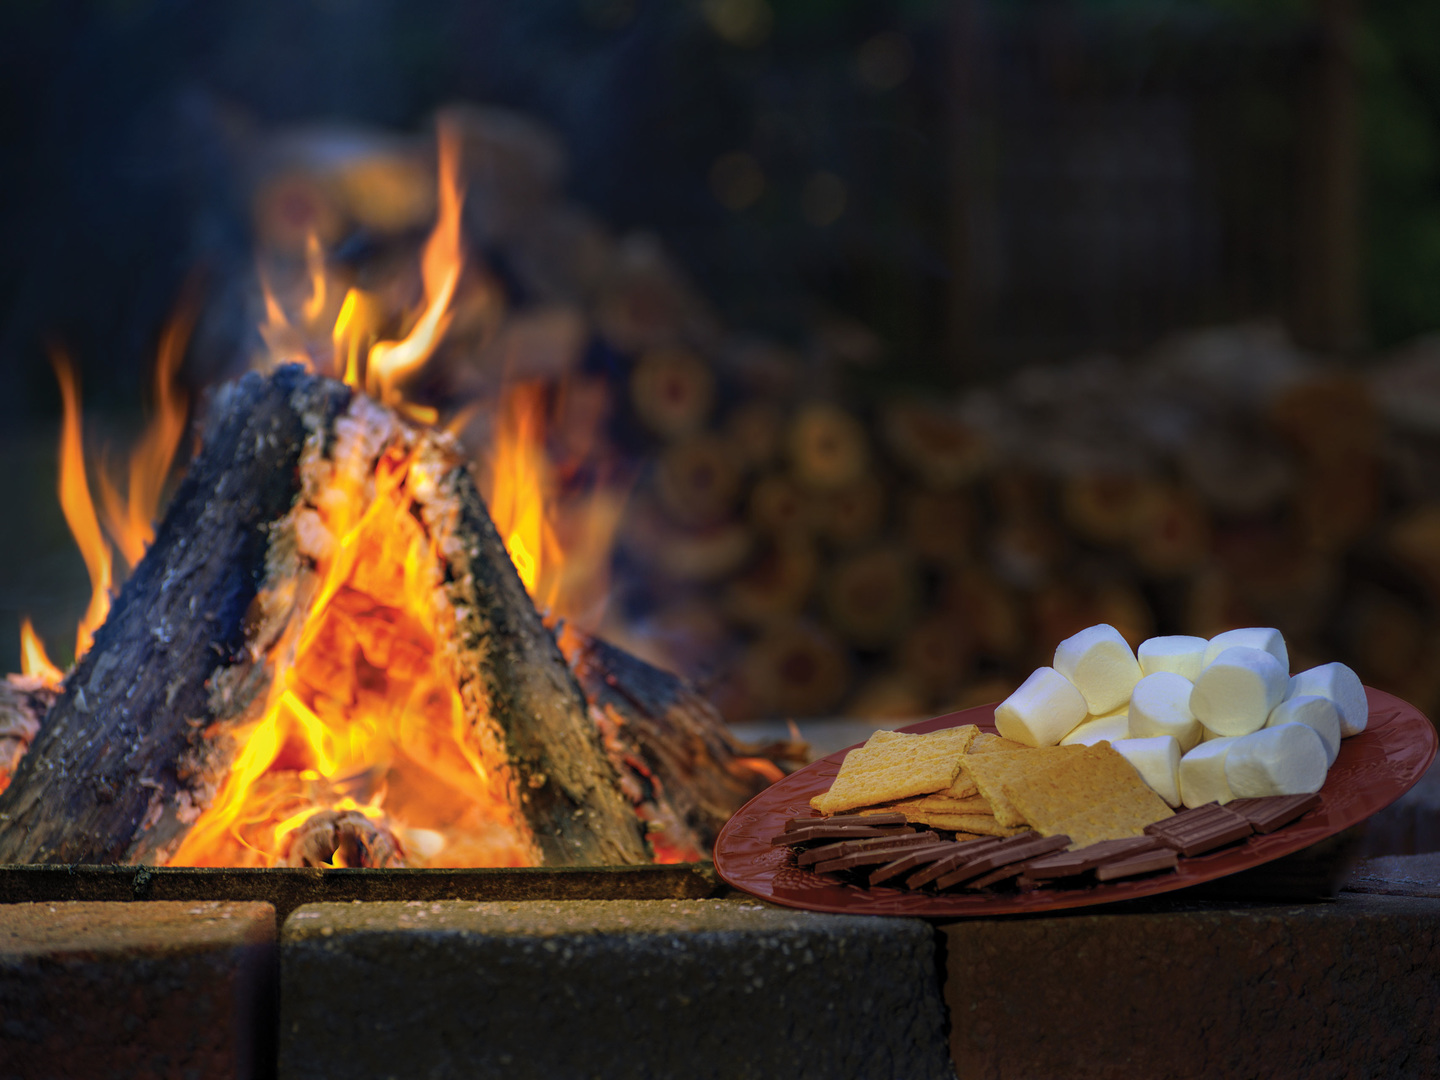 Marriott's Willow Ridge Lodge Fire Pit. Marriott's Willow Ridge Lodge is located in Branson, Missouri United States.